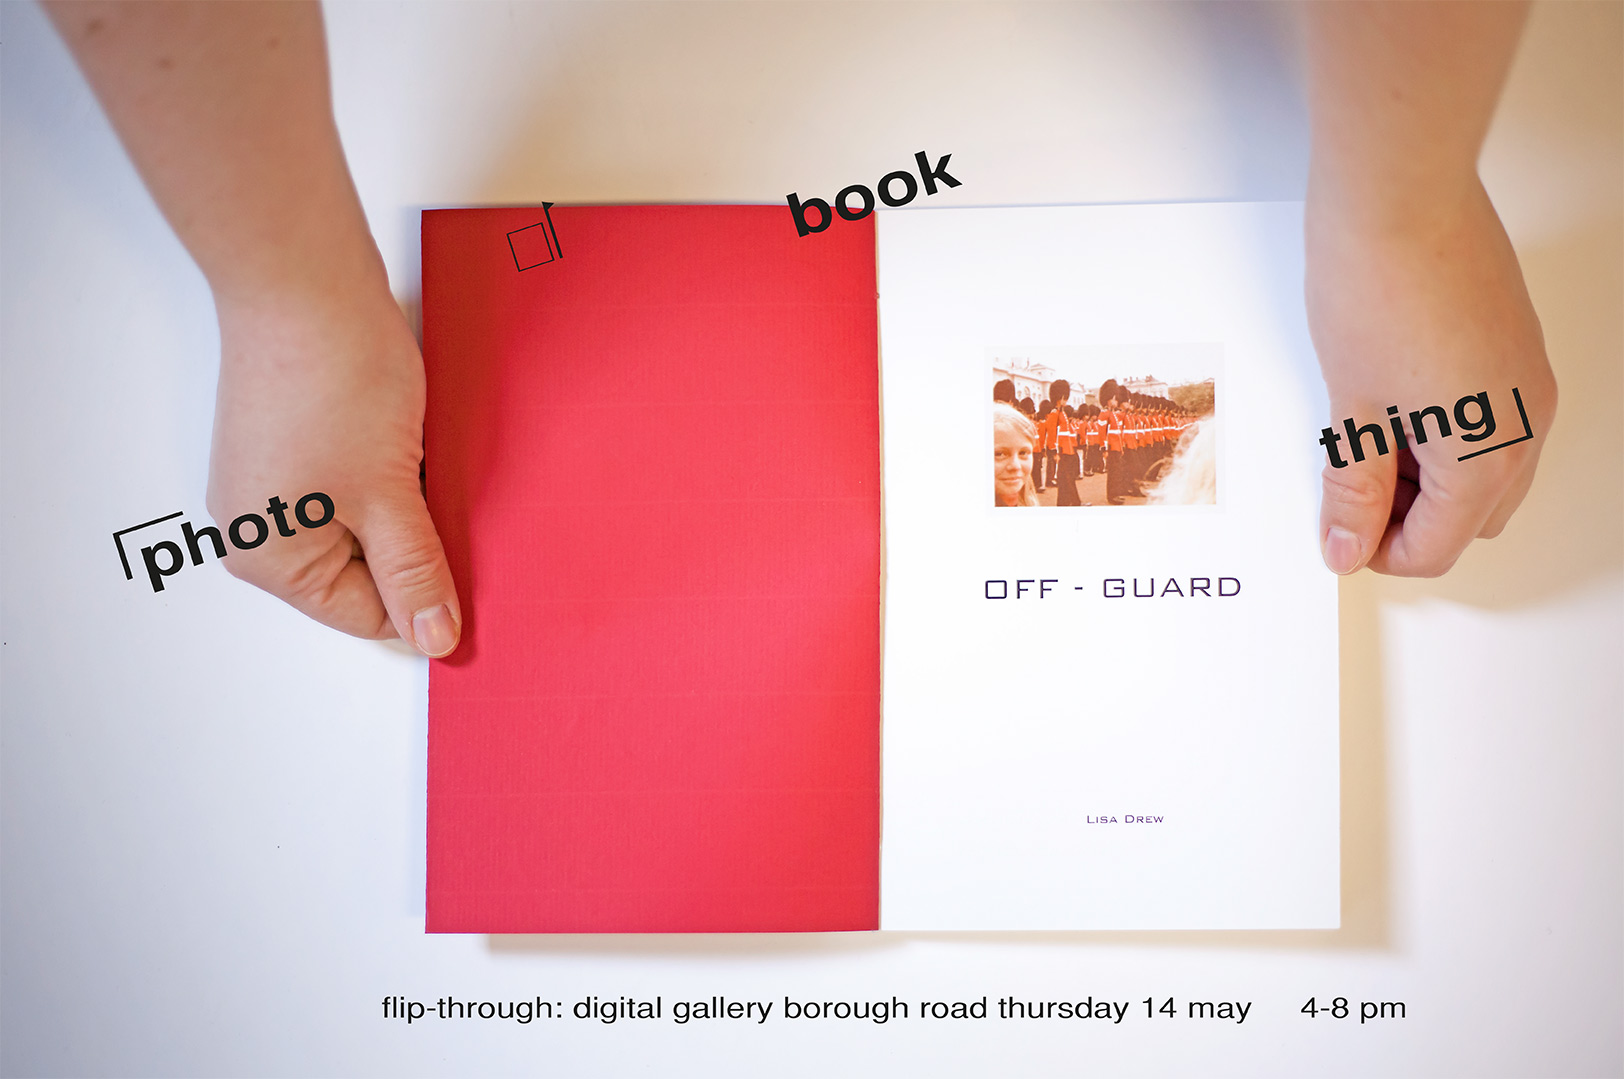 PHOTO-BOOK-THING-2